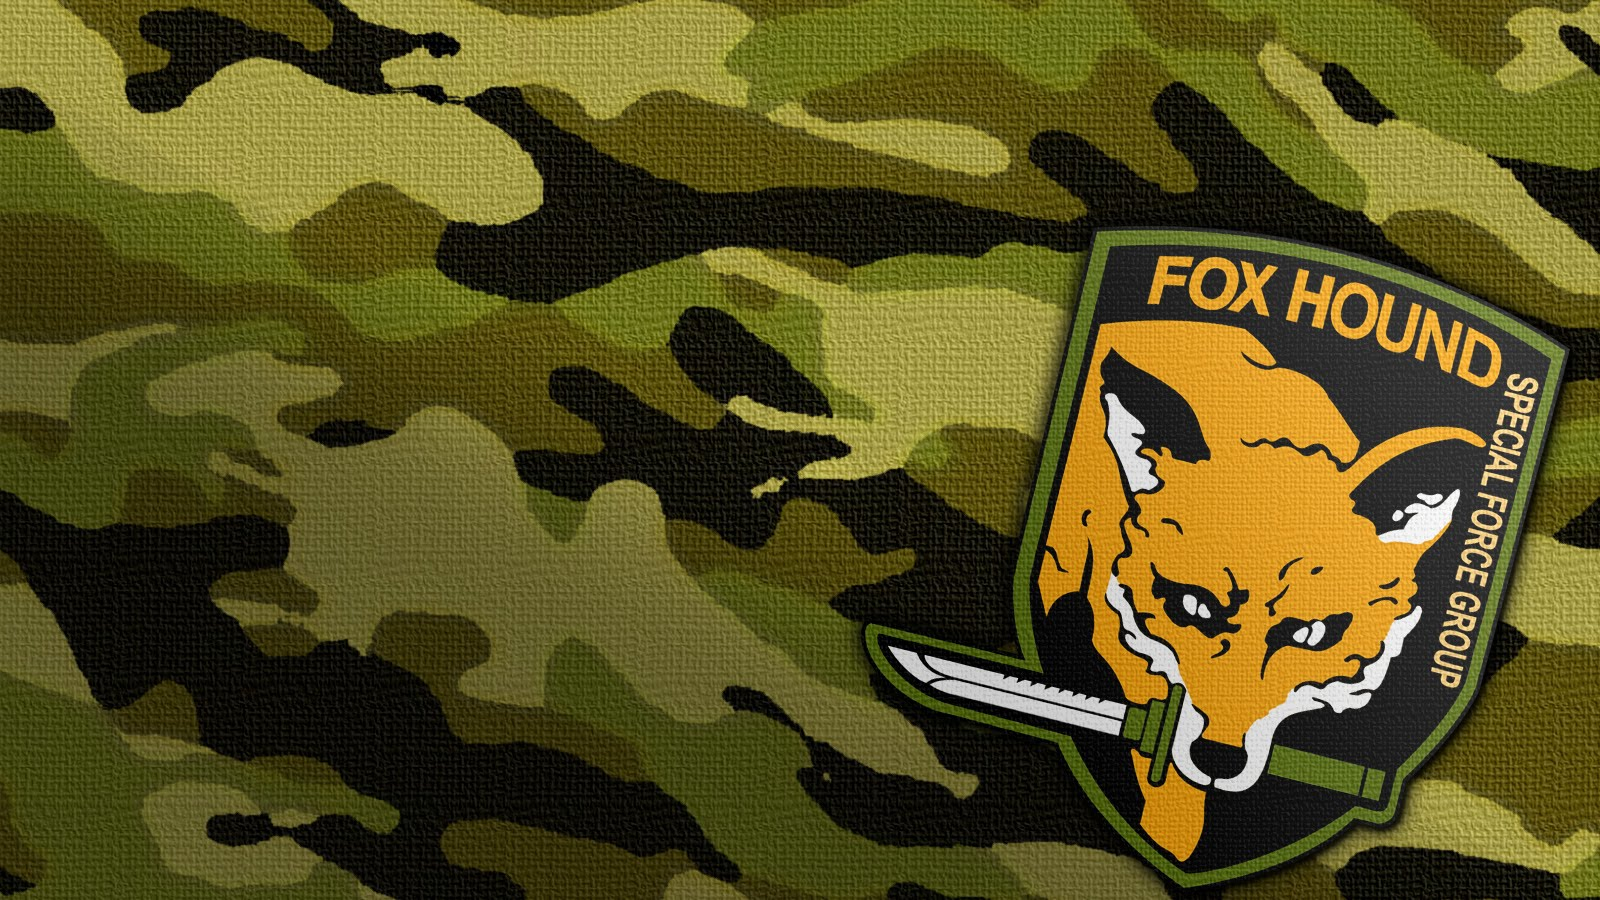 Specialforces mgs foxhound - Foxhound metal gear wallpaper ...